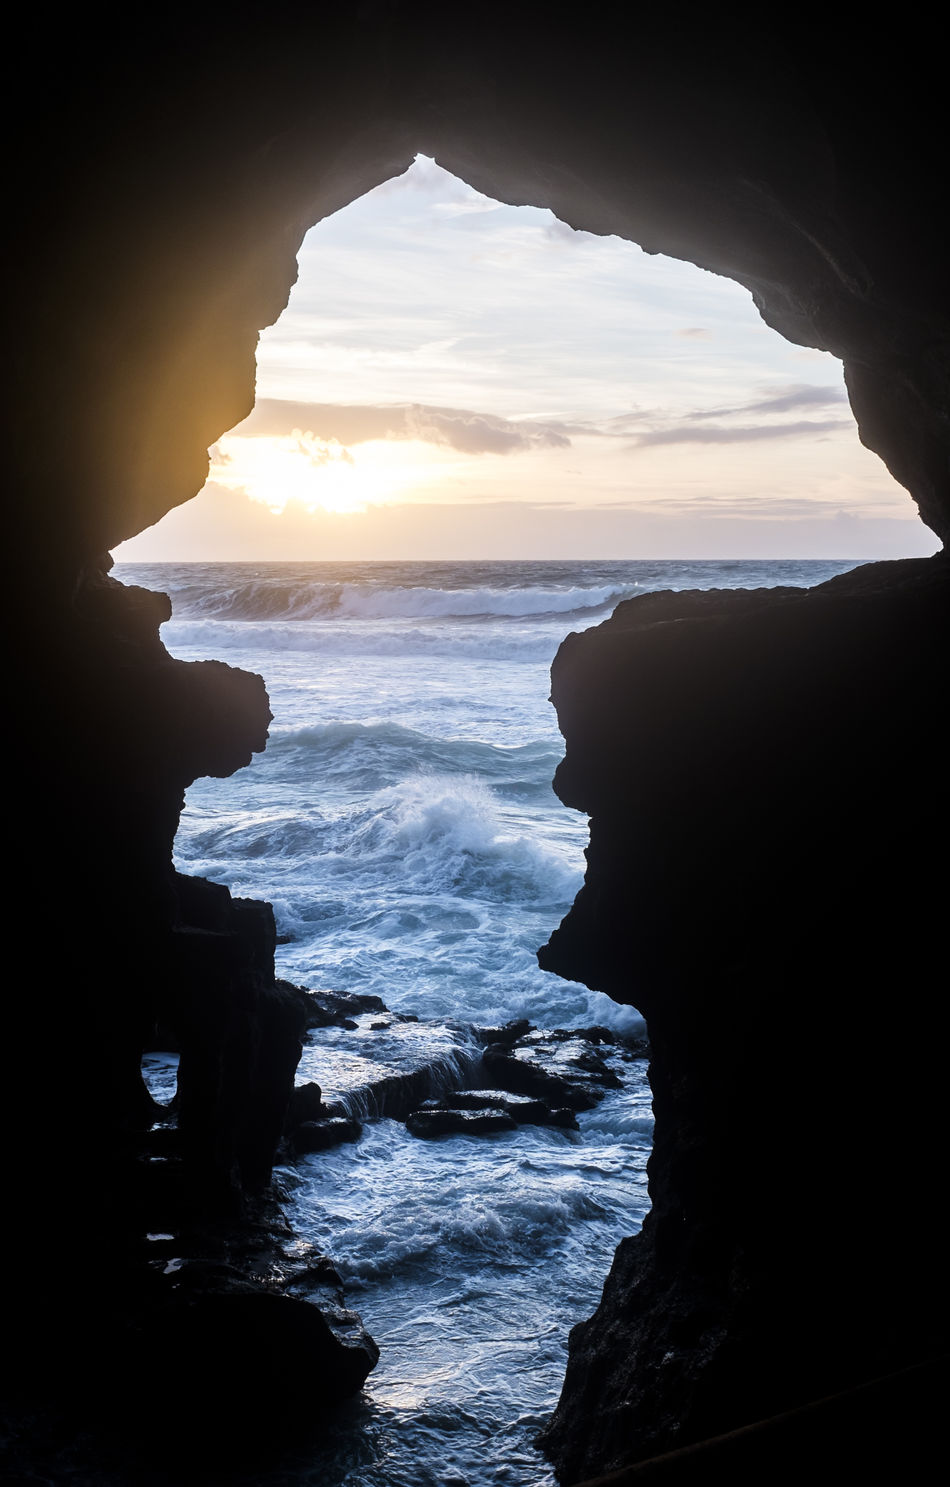 Sunset over the Atlantic coast of Tangier. View from inside of the Hercules Cave Cave Cloud - Sky Hercules Hercules Cave Light And Shadow Sea Sea And Sky Silhouette Sunset Tangier Waves